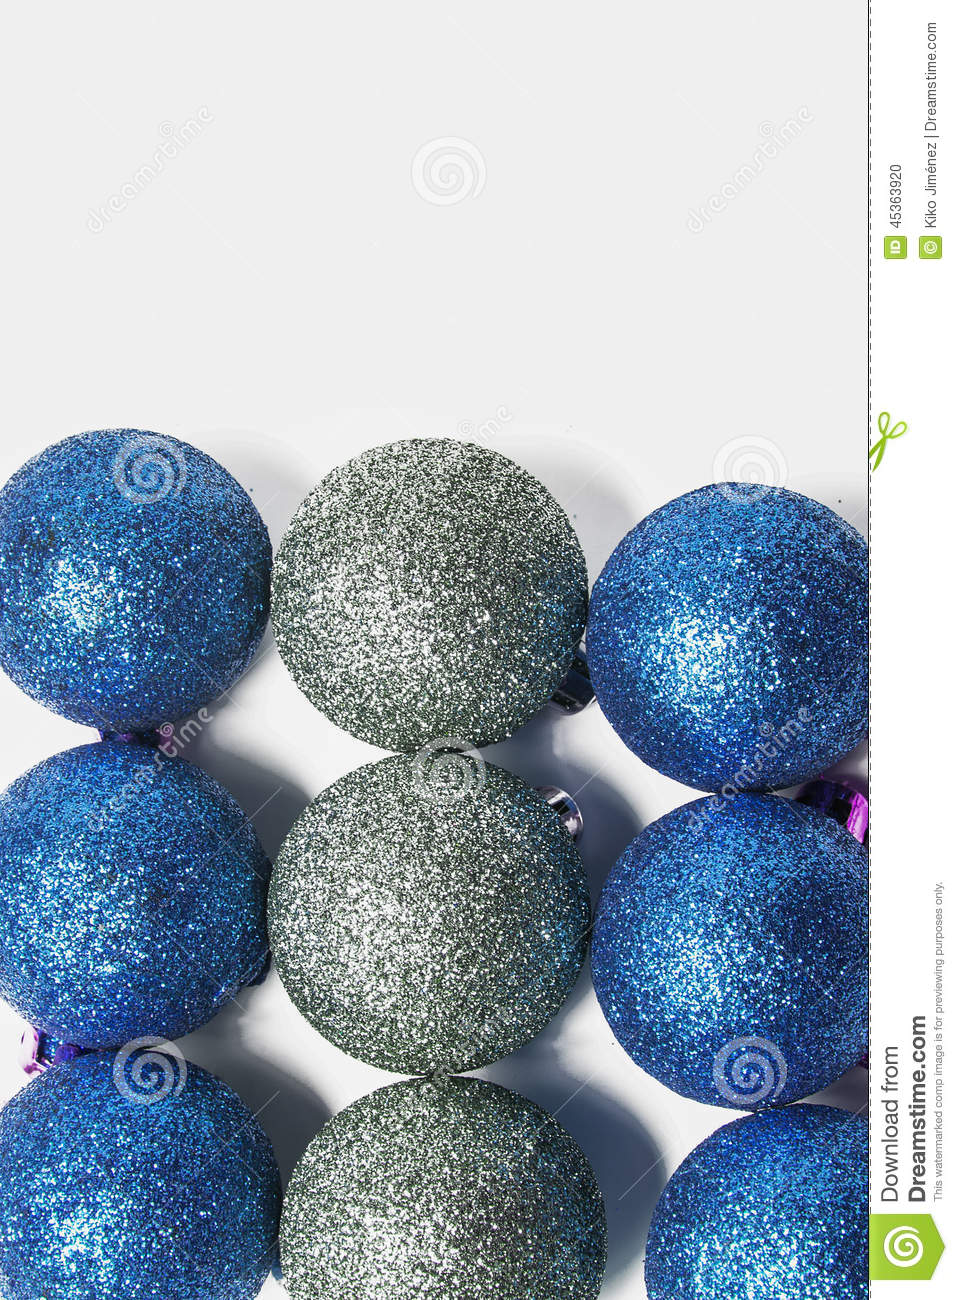 Blue And Silver Christmas Ornament Stock Photo Image Of Closeup